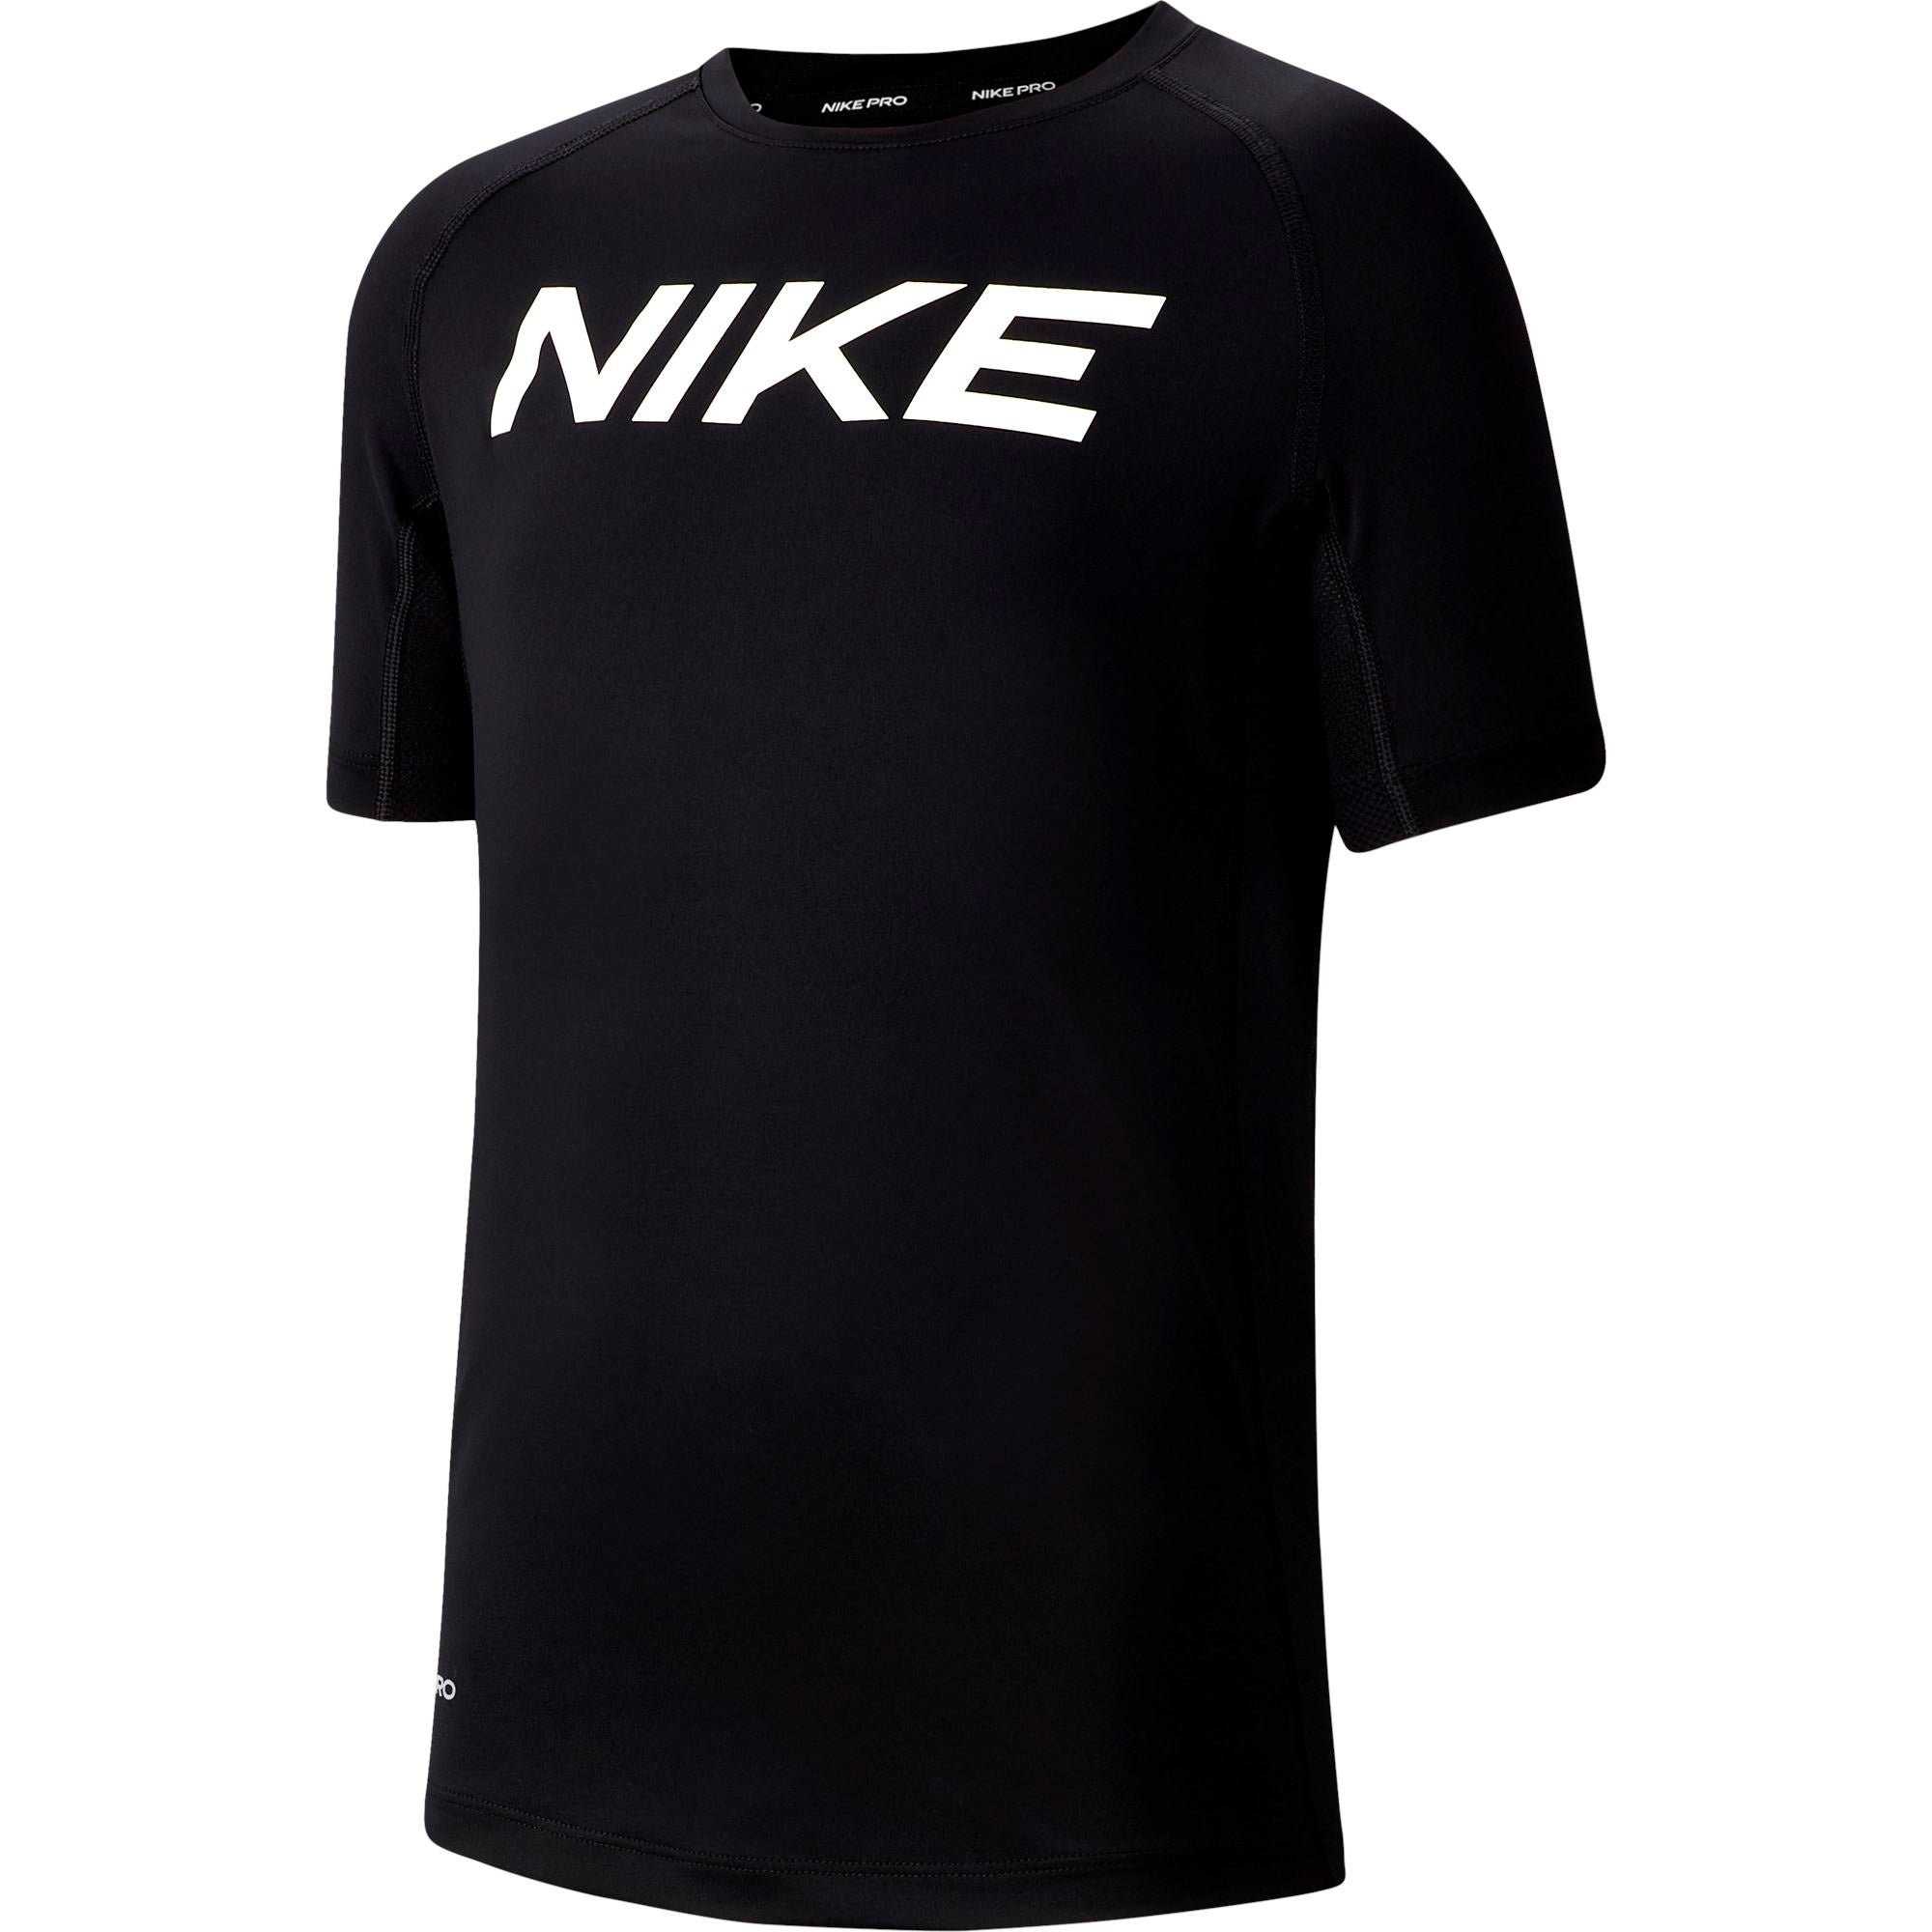 Nike Pro Big Kids (Boys) Short-Sleeve Training Top - Black/White SP-ApparelTees-Kids Nike